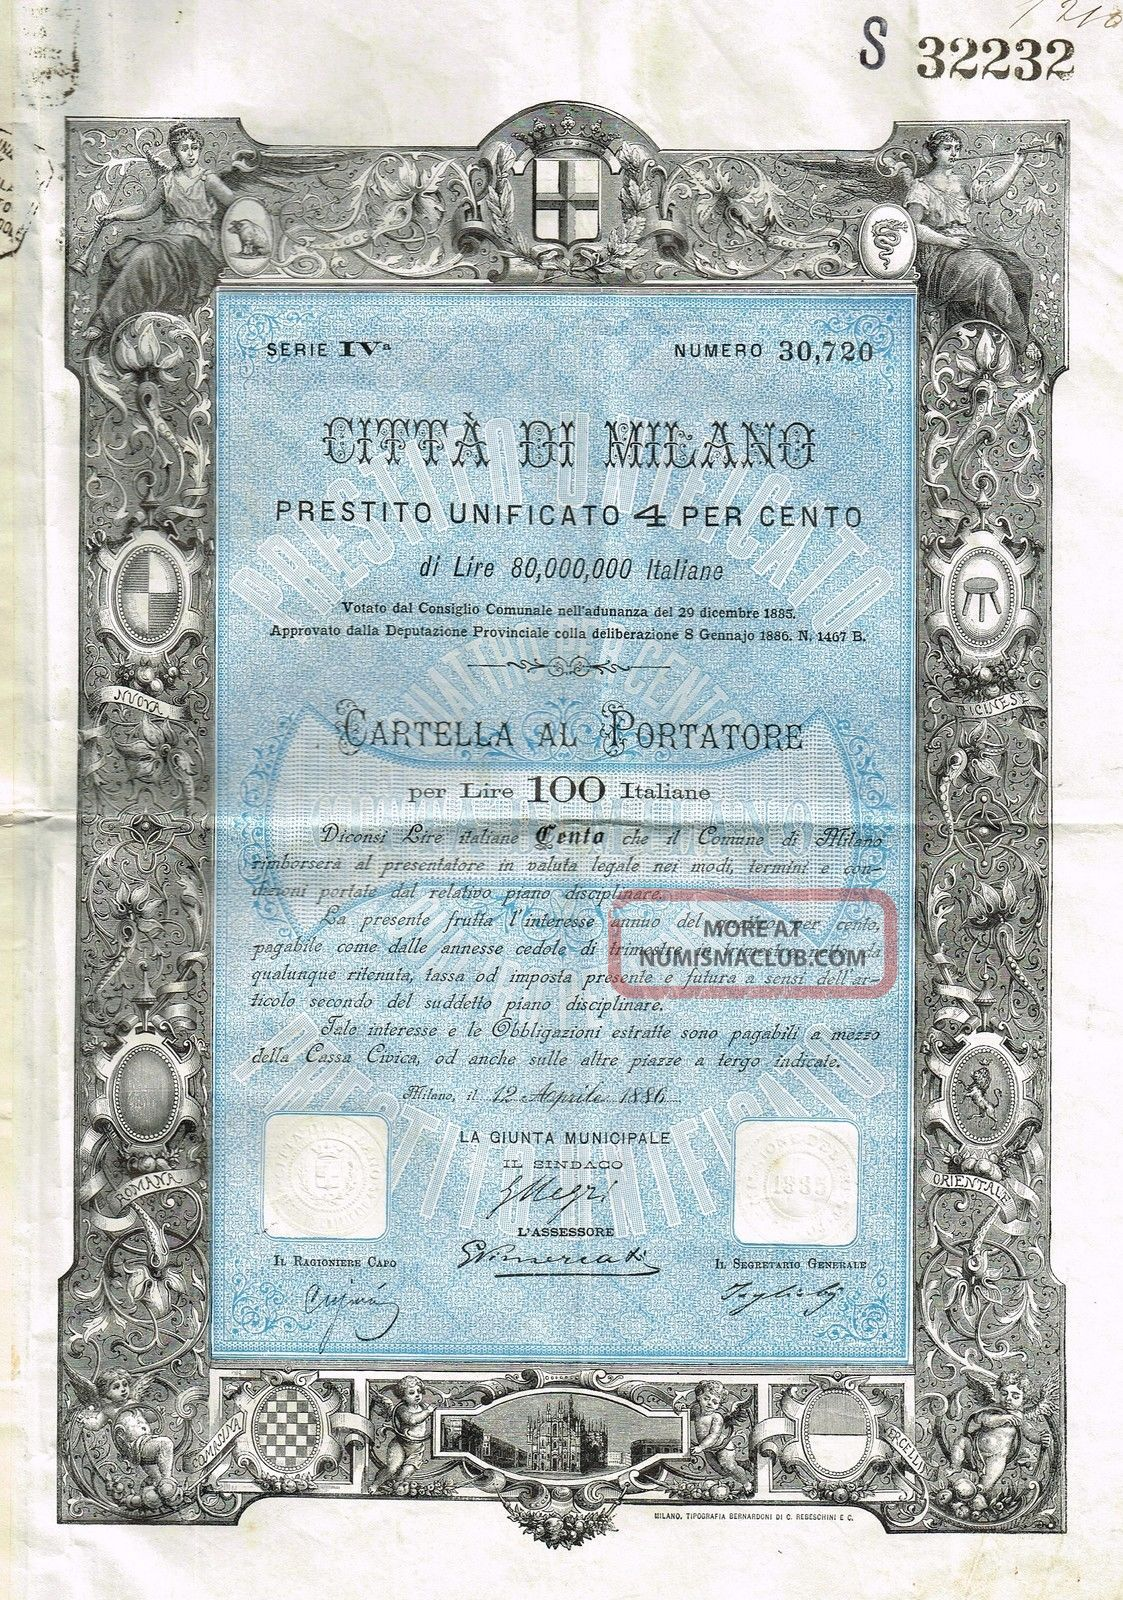 Italy City Of Milan Bond Stock Certificate 1886 W/coupons World photo